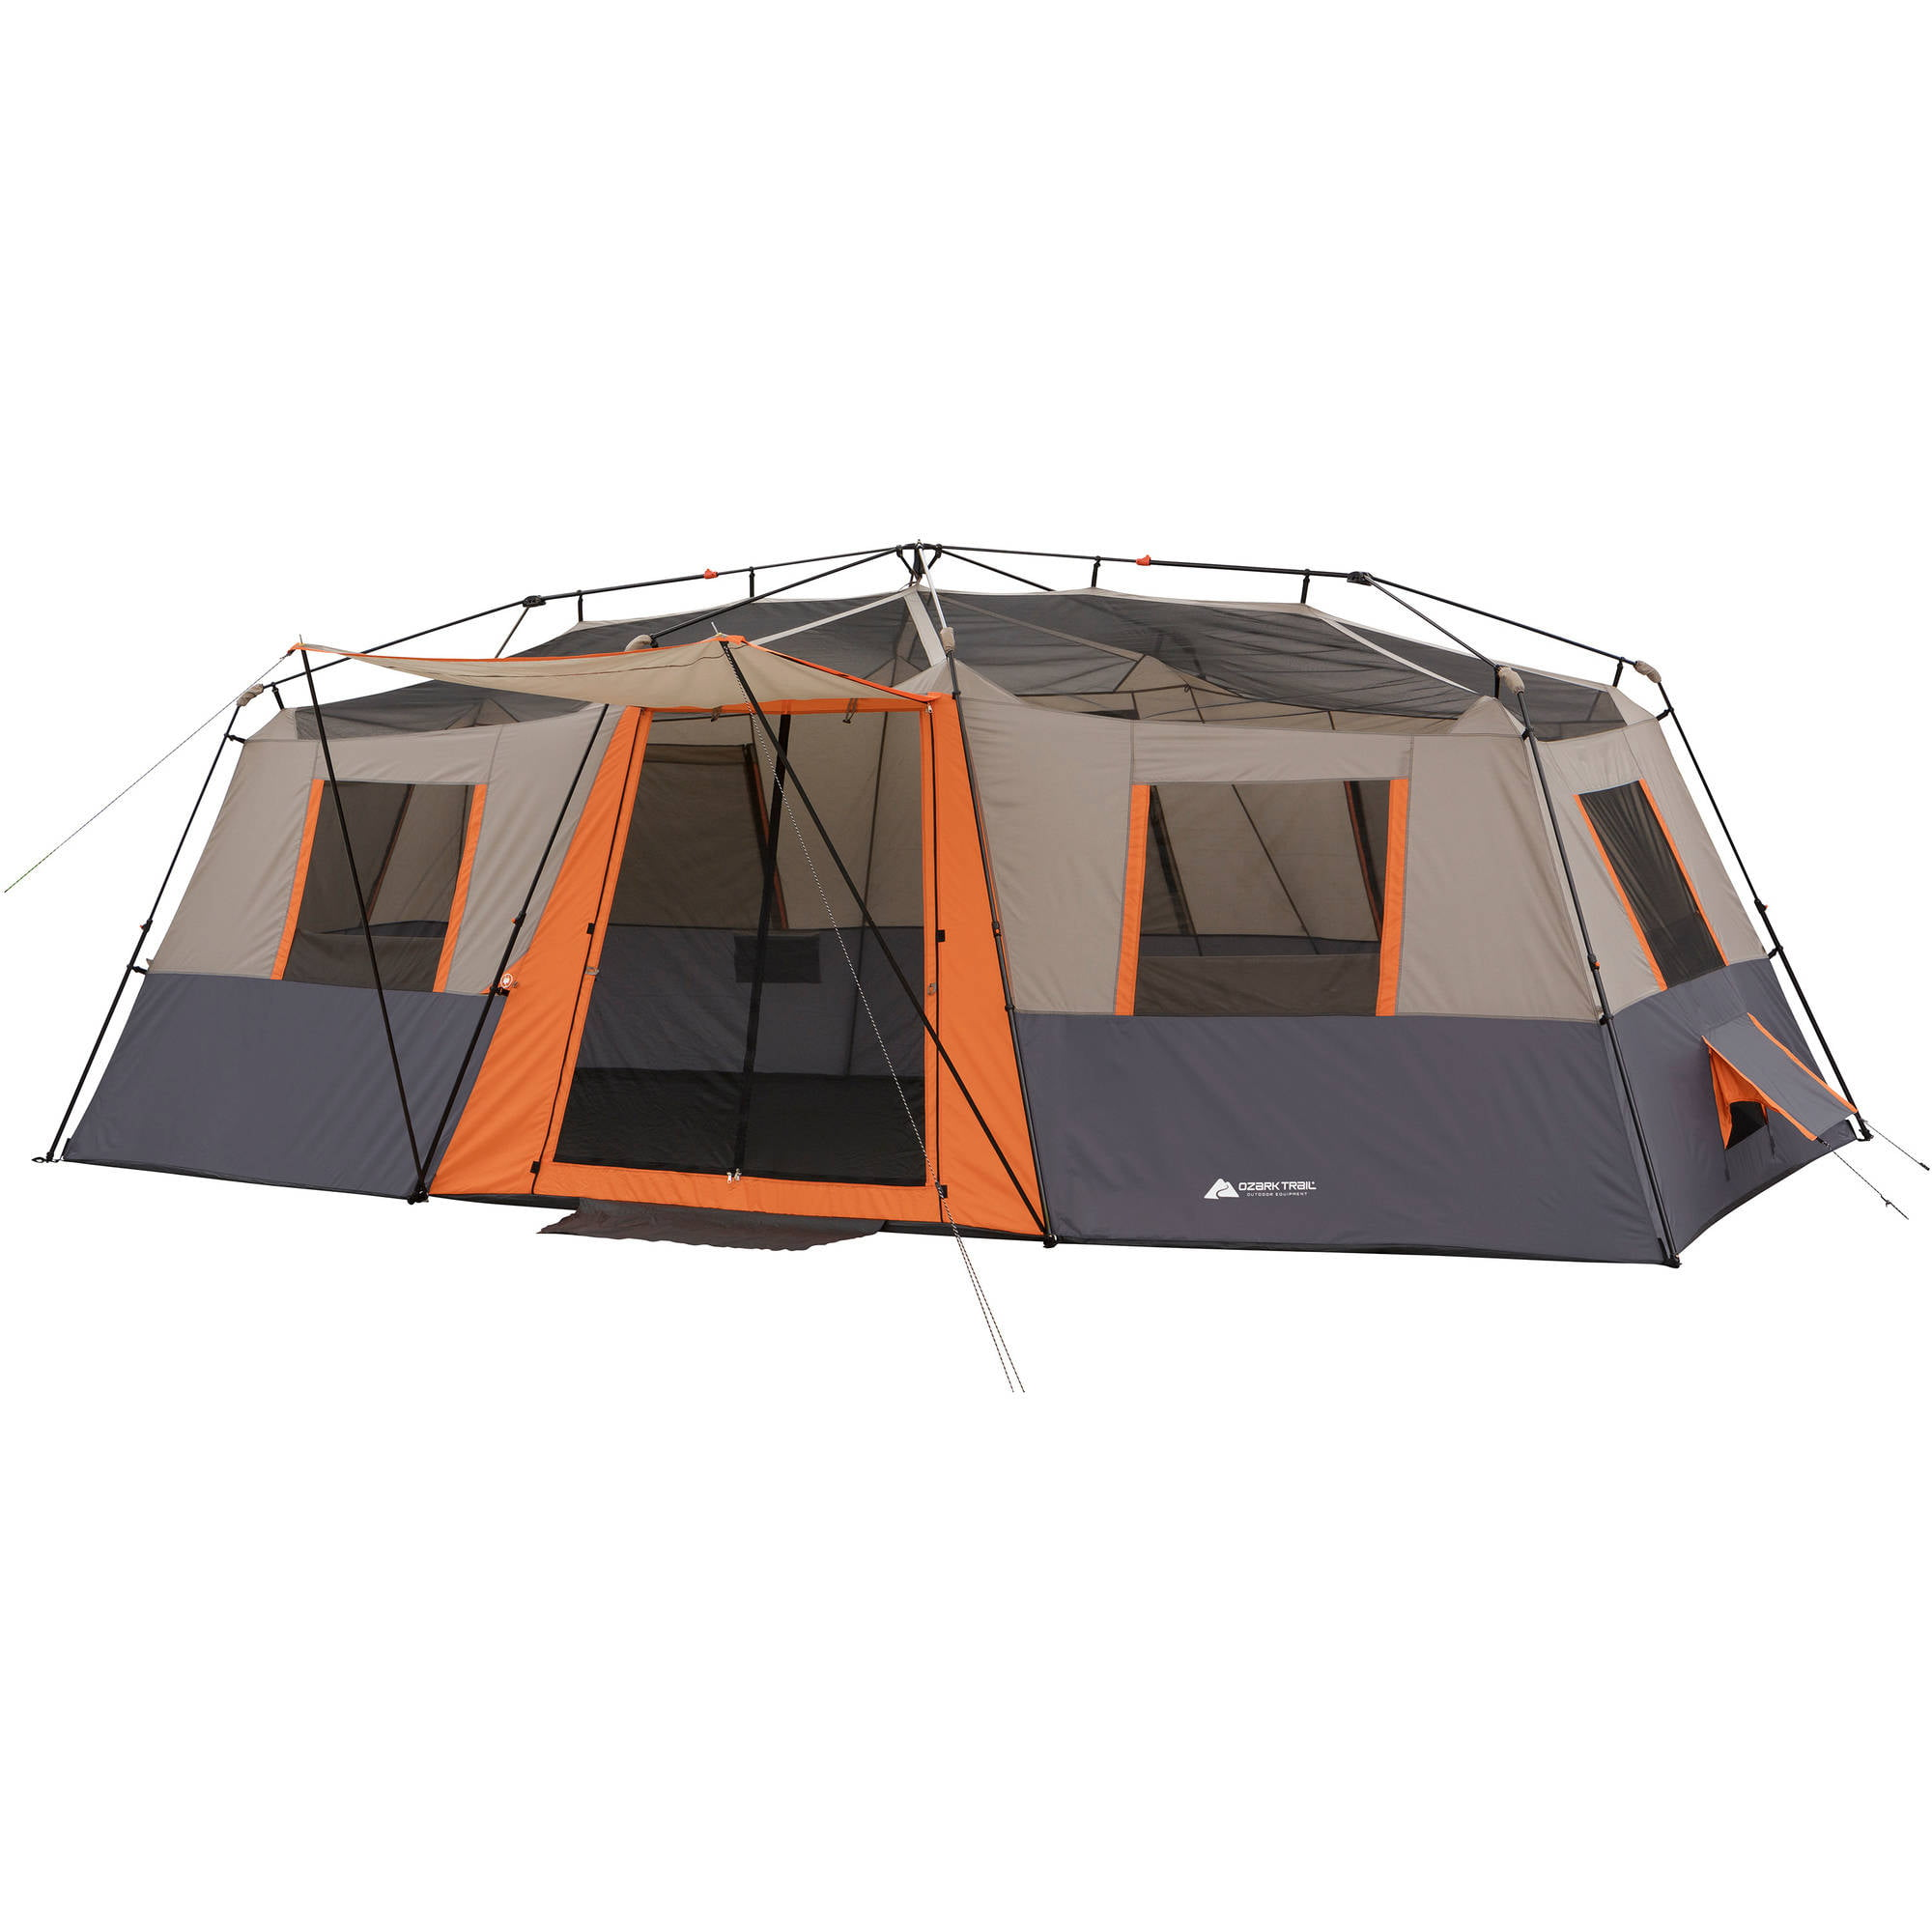 Ozark Trail 12 Person 3 Room Instant Cabin Tent with 2 Airbeds and 2 Chairs Value Bundle - Walmart.com  sc 1 st  Walmart & Ozark Trail 12 Person 3 Room Instant Cabin Tent with 2 Airbeds and ...